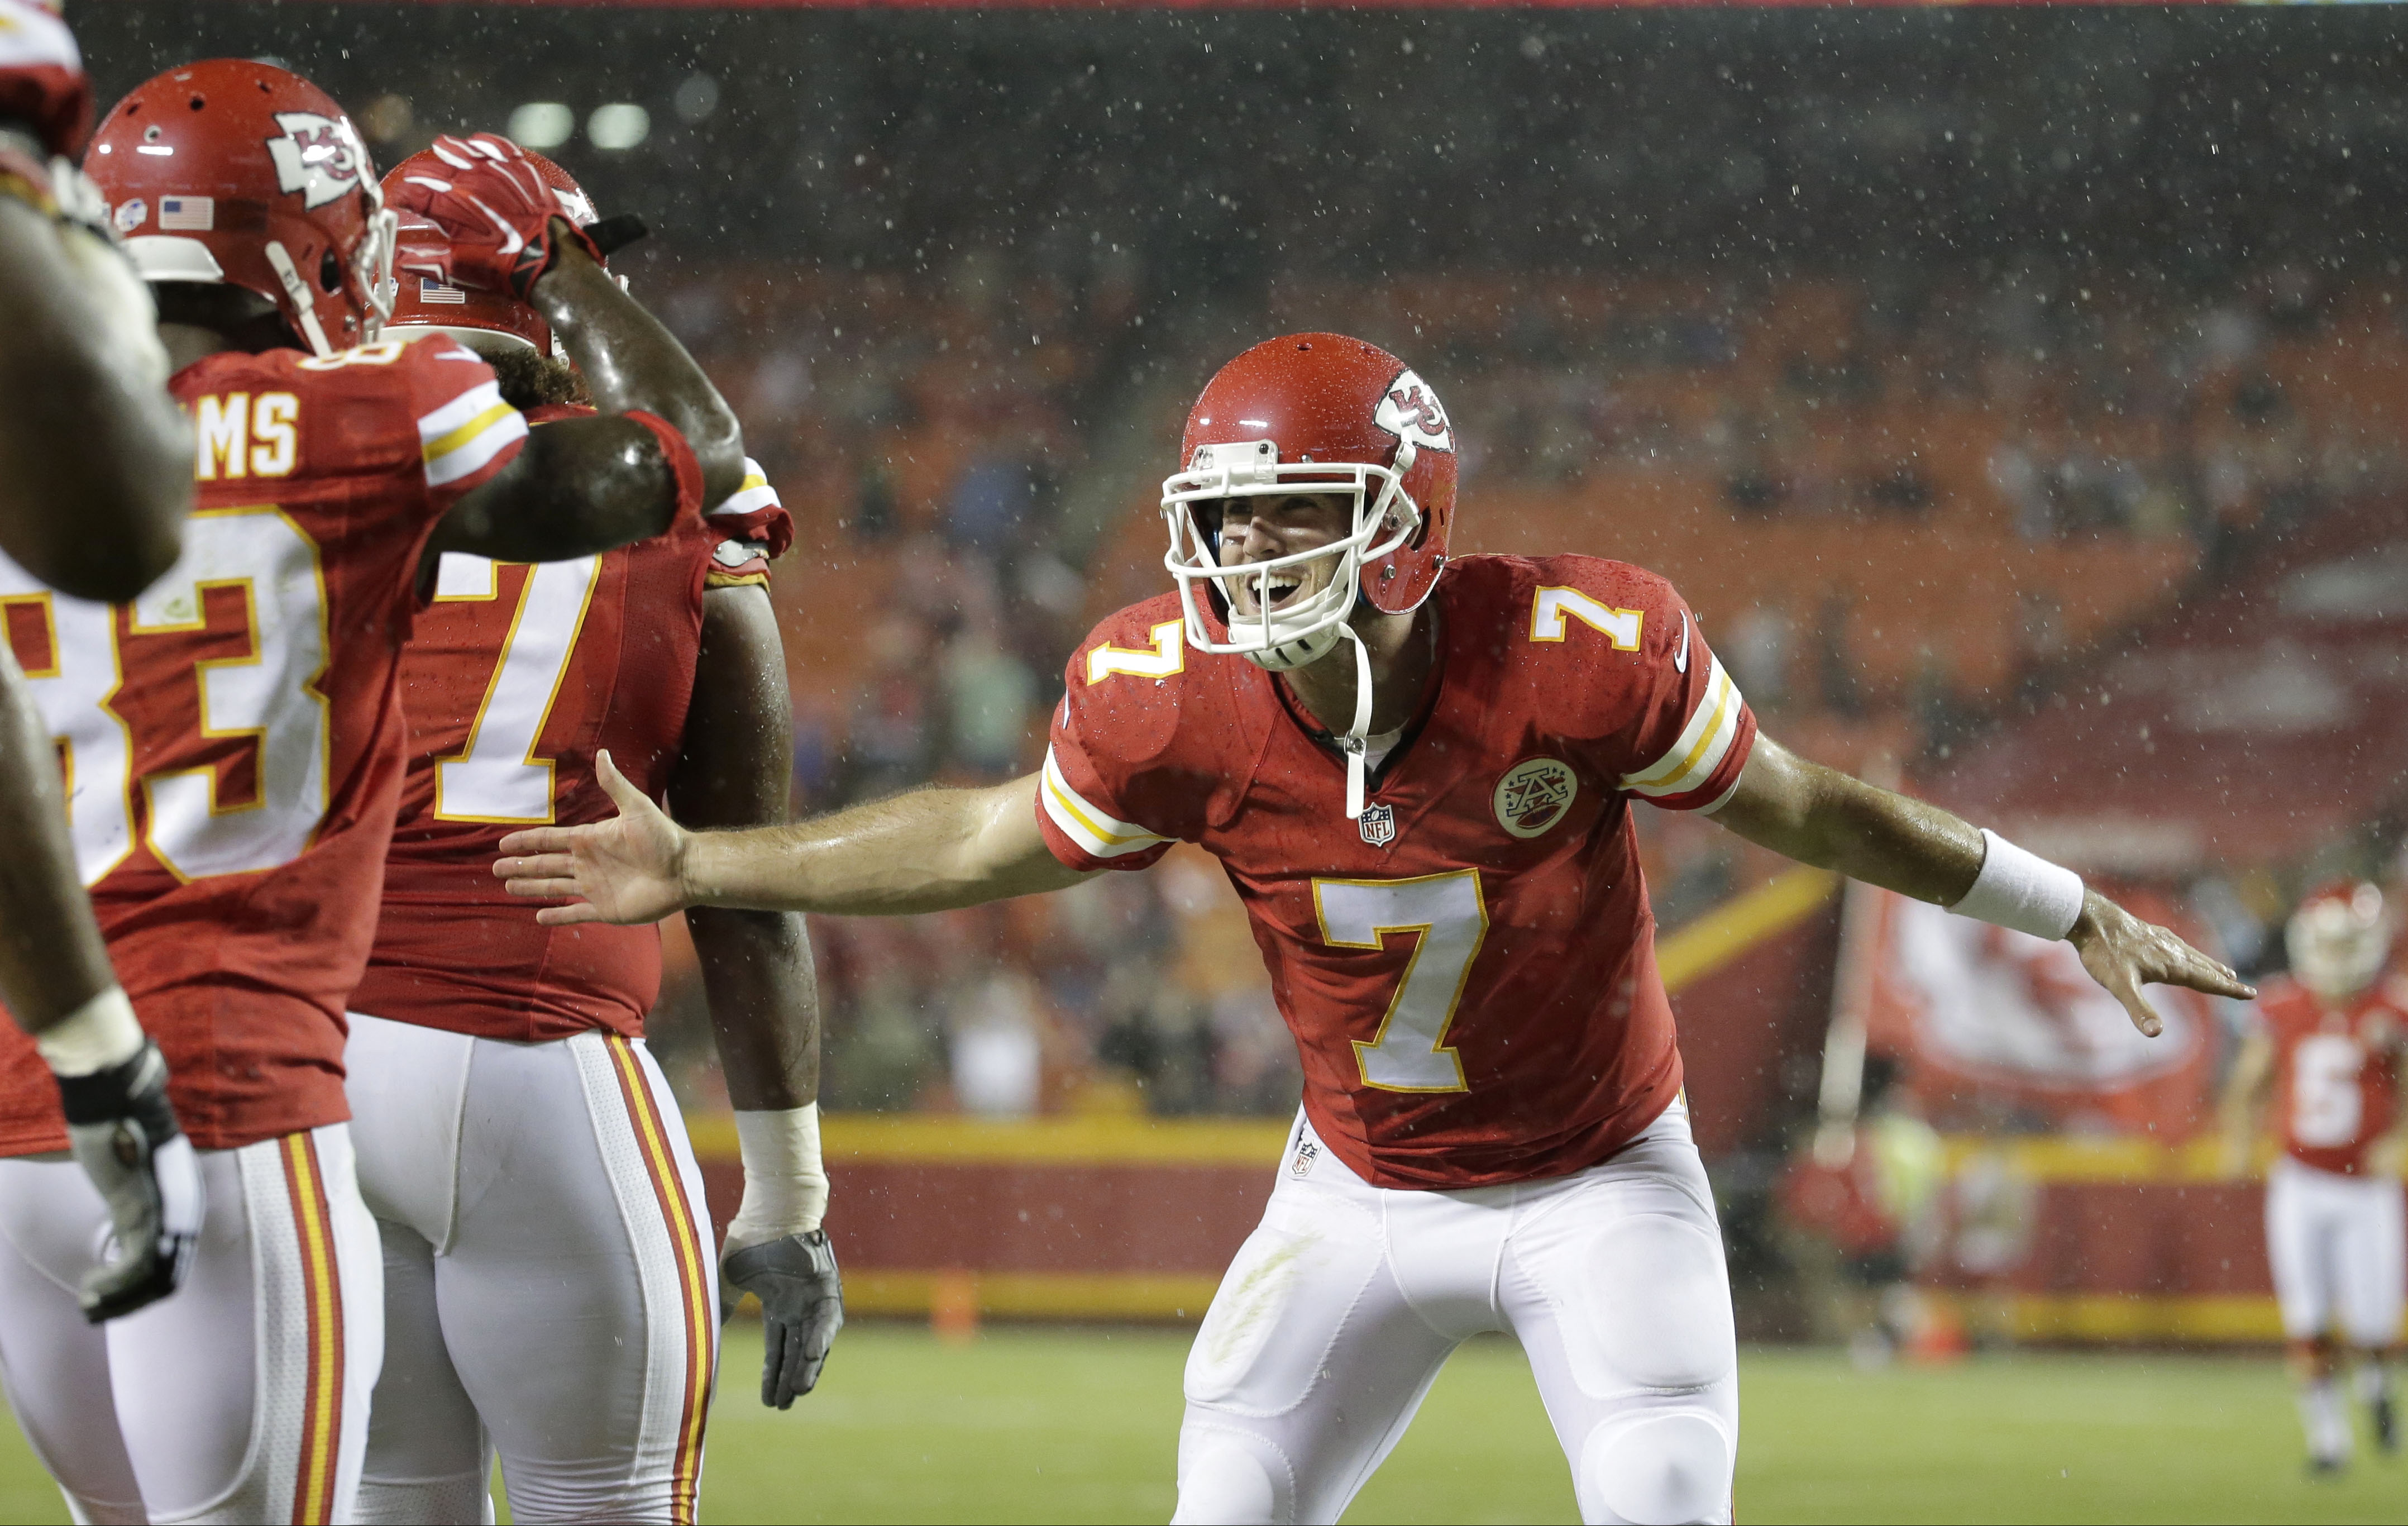 Kansas City Chiefs quarterback Aaron Murray (7) celebrates with teammates during the second half of a preseason NFL football game against the Tennessee Titans at Arrowhead Stadium in Kansas City, Mo., Friday, Aug. 28, 2015. (AP Photo/Charlie Riedel)